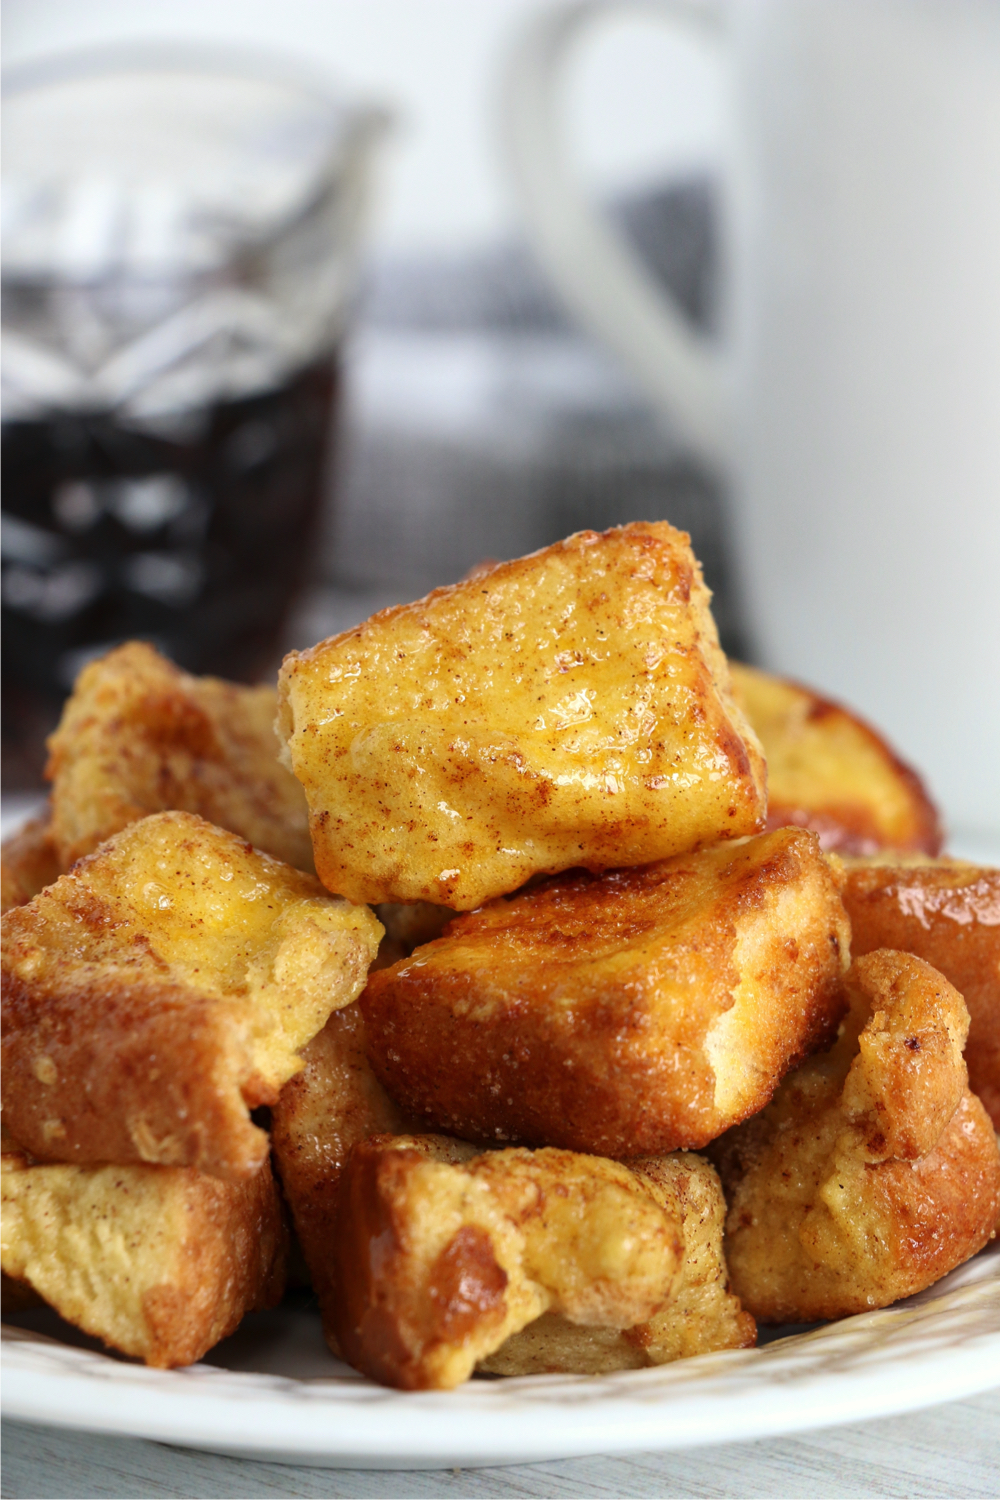 stack of French Toast bites on plate